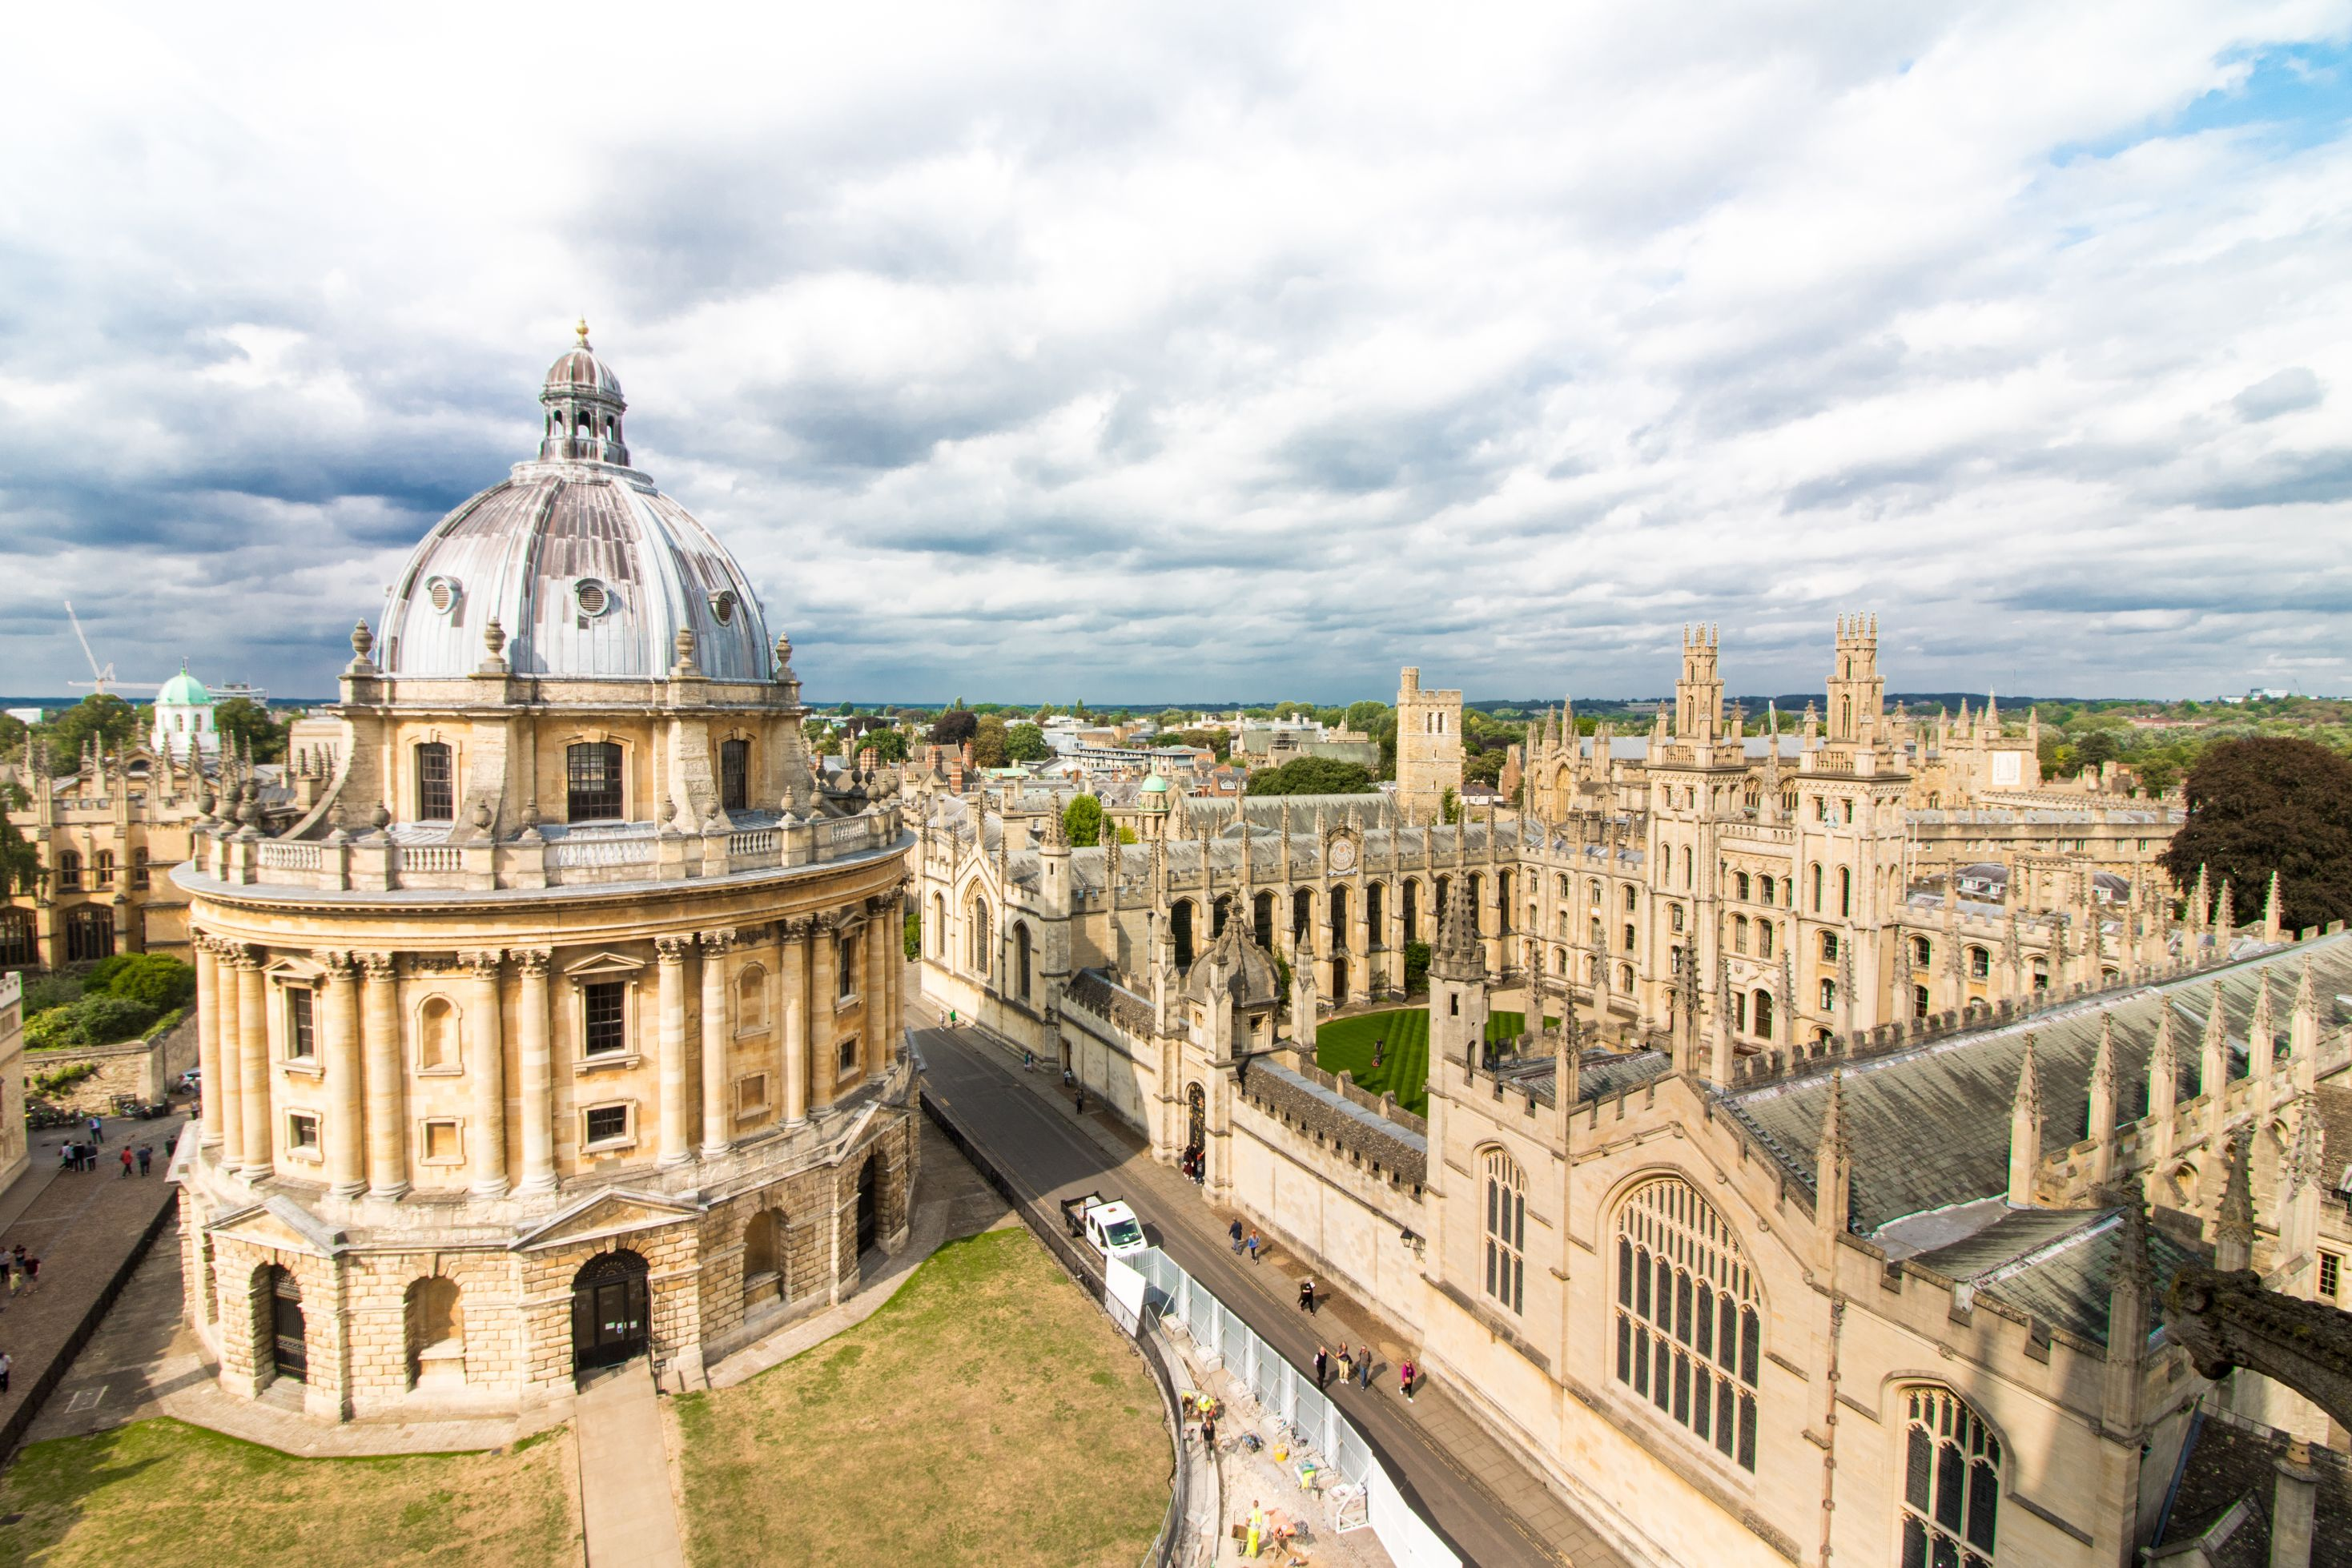 Views of Oxford England from above from University Church of St Mary Tower. Radcliffe Camera. Oxford University colleges. Old historic buildings and castles. Blue cloudy sky. How to Spend One Day in Oxford: Best Things to Do. Oxford England. Oxford UK. Oxford University. 24 hours in Oxford. Oxford in One Day. Things to do in Oxford. Places to see in Oxford. Places to Visit in Oxford. What to see in Oxford. Things to see in Oxford. What to do in Oxford. Oxford attractions. Oxford top attractions. Oxford travel blog. Oxford travel guide. Oxford Castle. Turl Street. Oxford bookshops. Bridge of Sighs. Bodleian Library. Radcliffe Camera. University Church of St Mary. Oxford punting. Click through to read more...